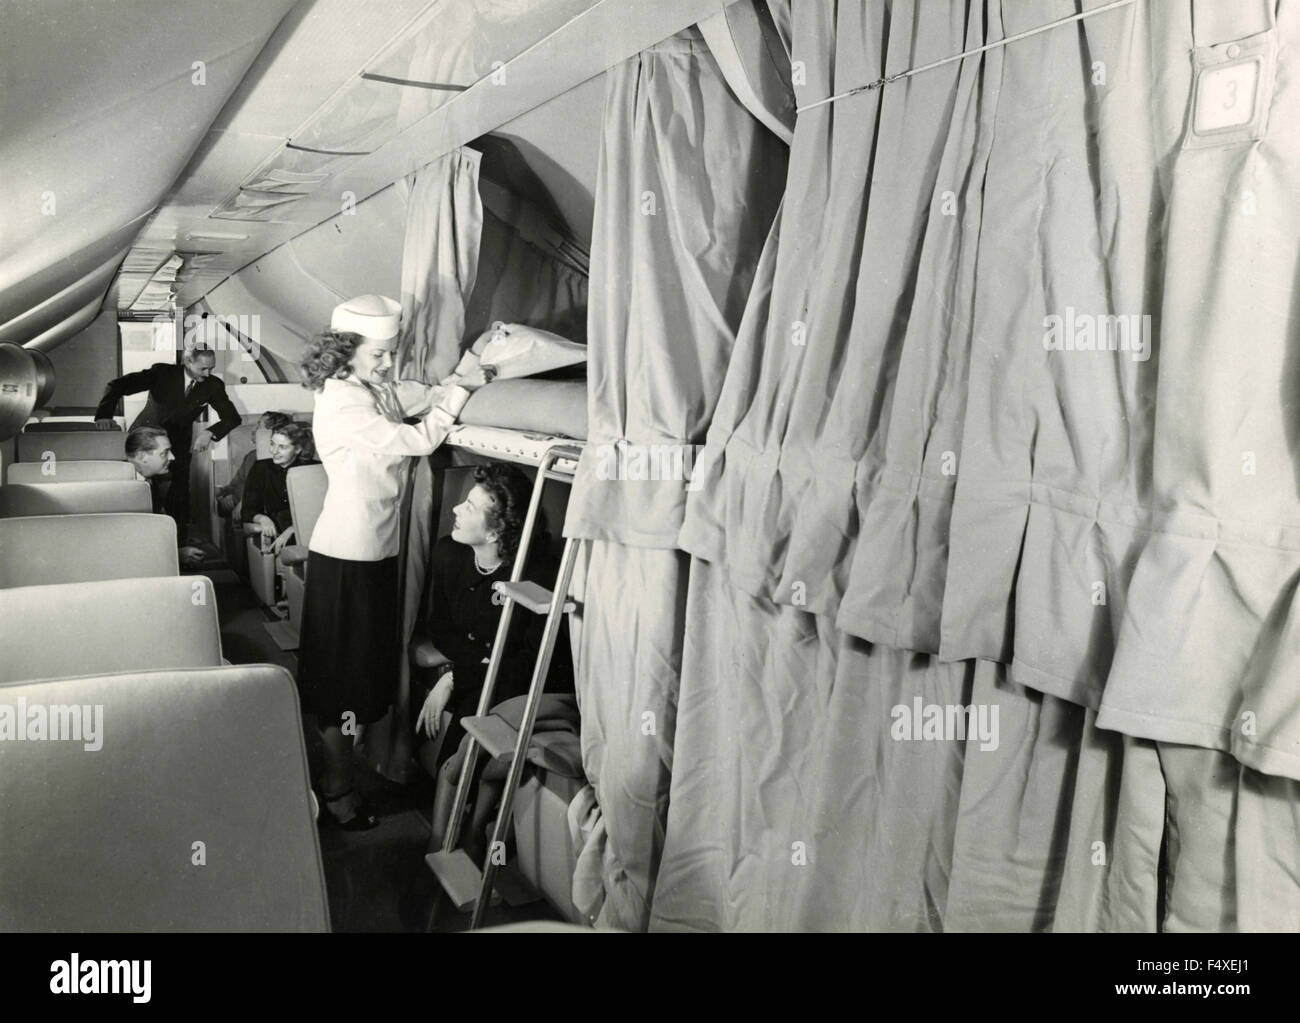 The interior of a plane with bunk beds - Stock Image